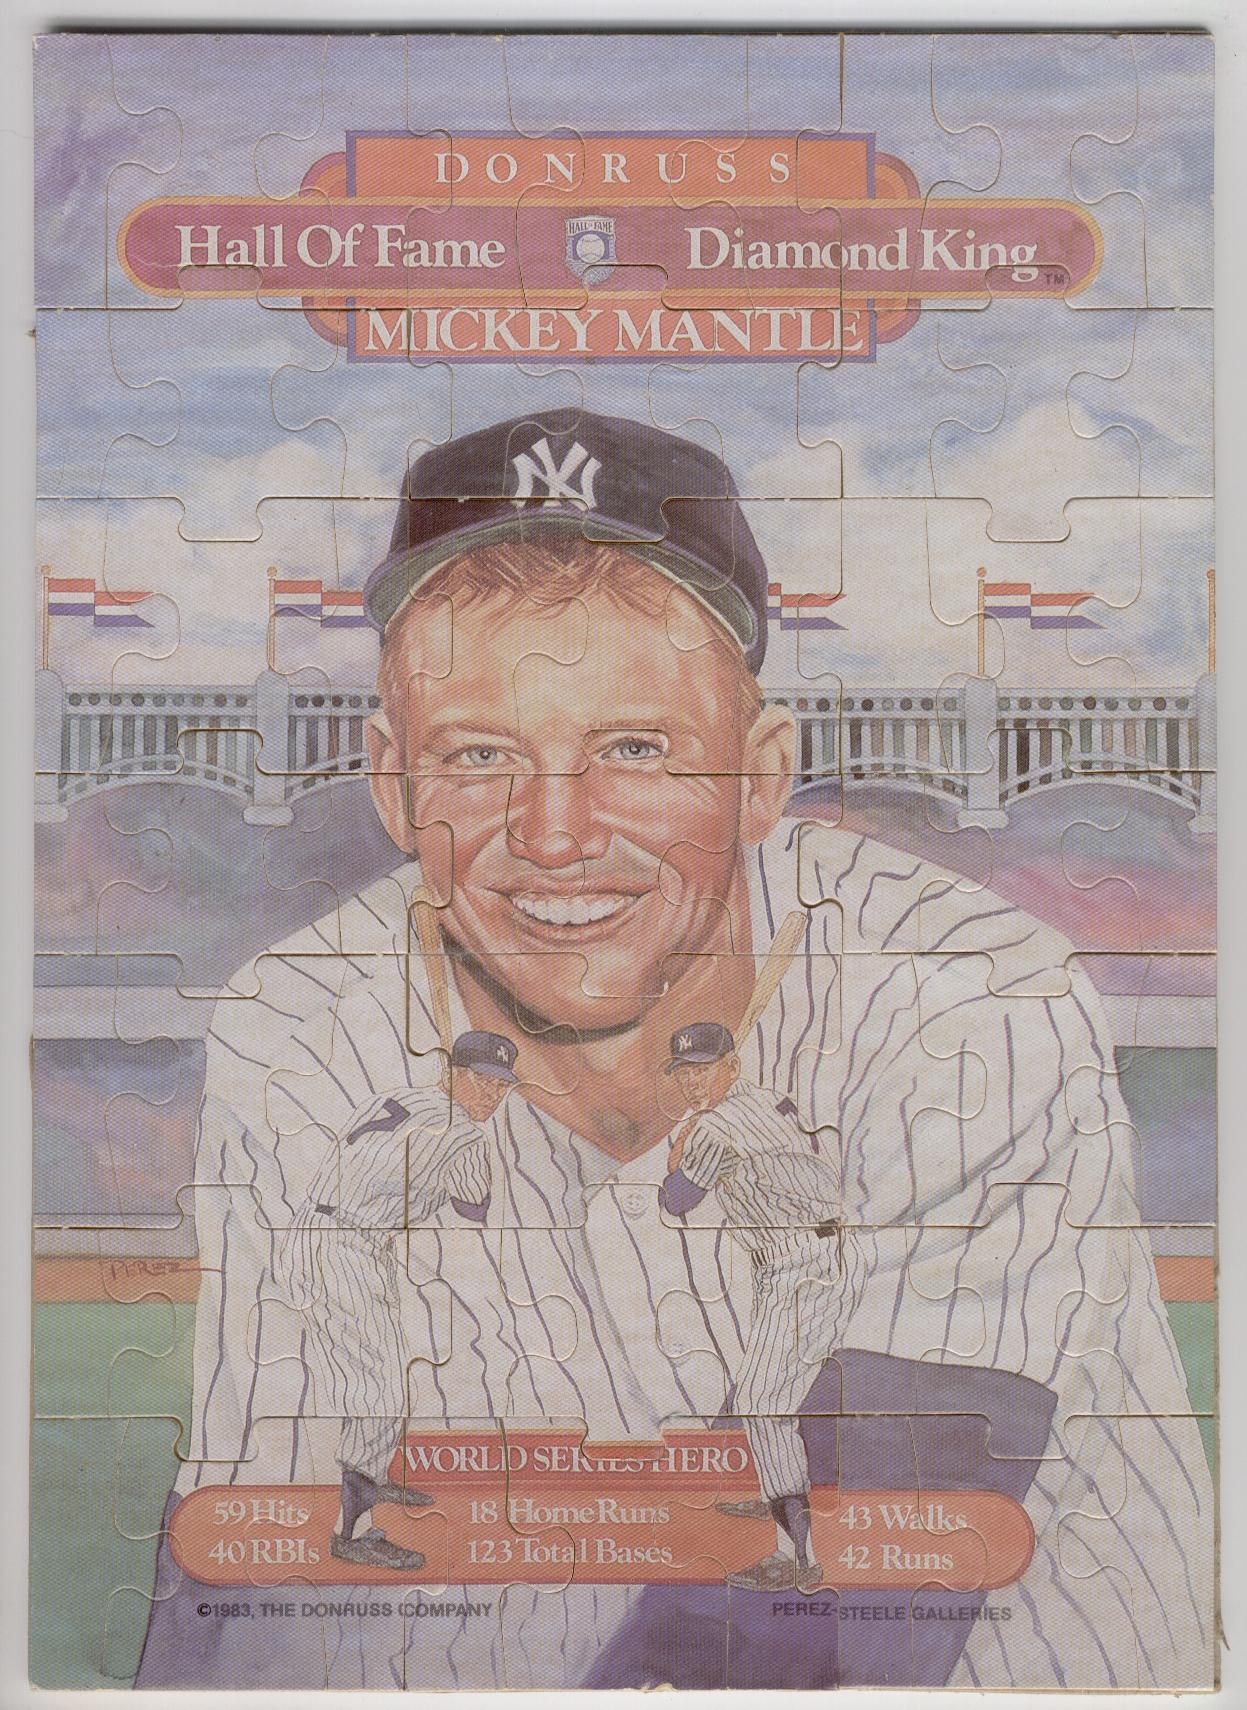 1983 Mickey Mantle Puzzle